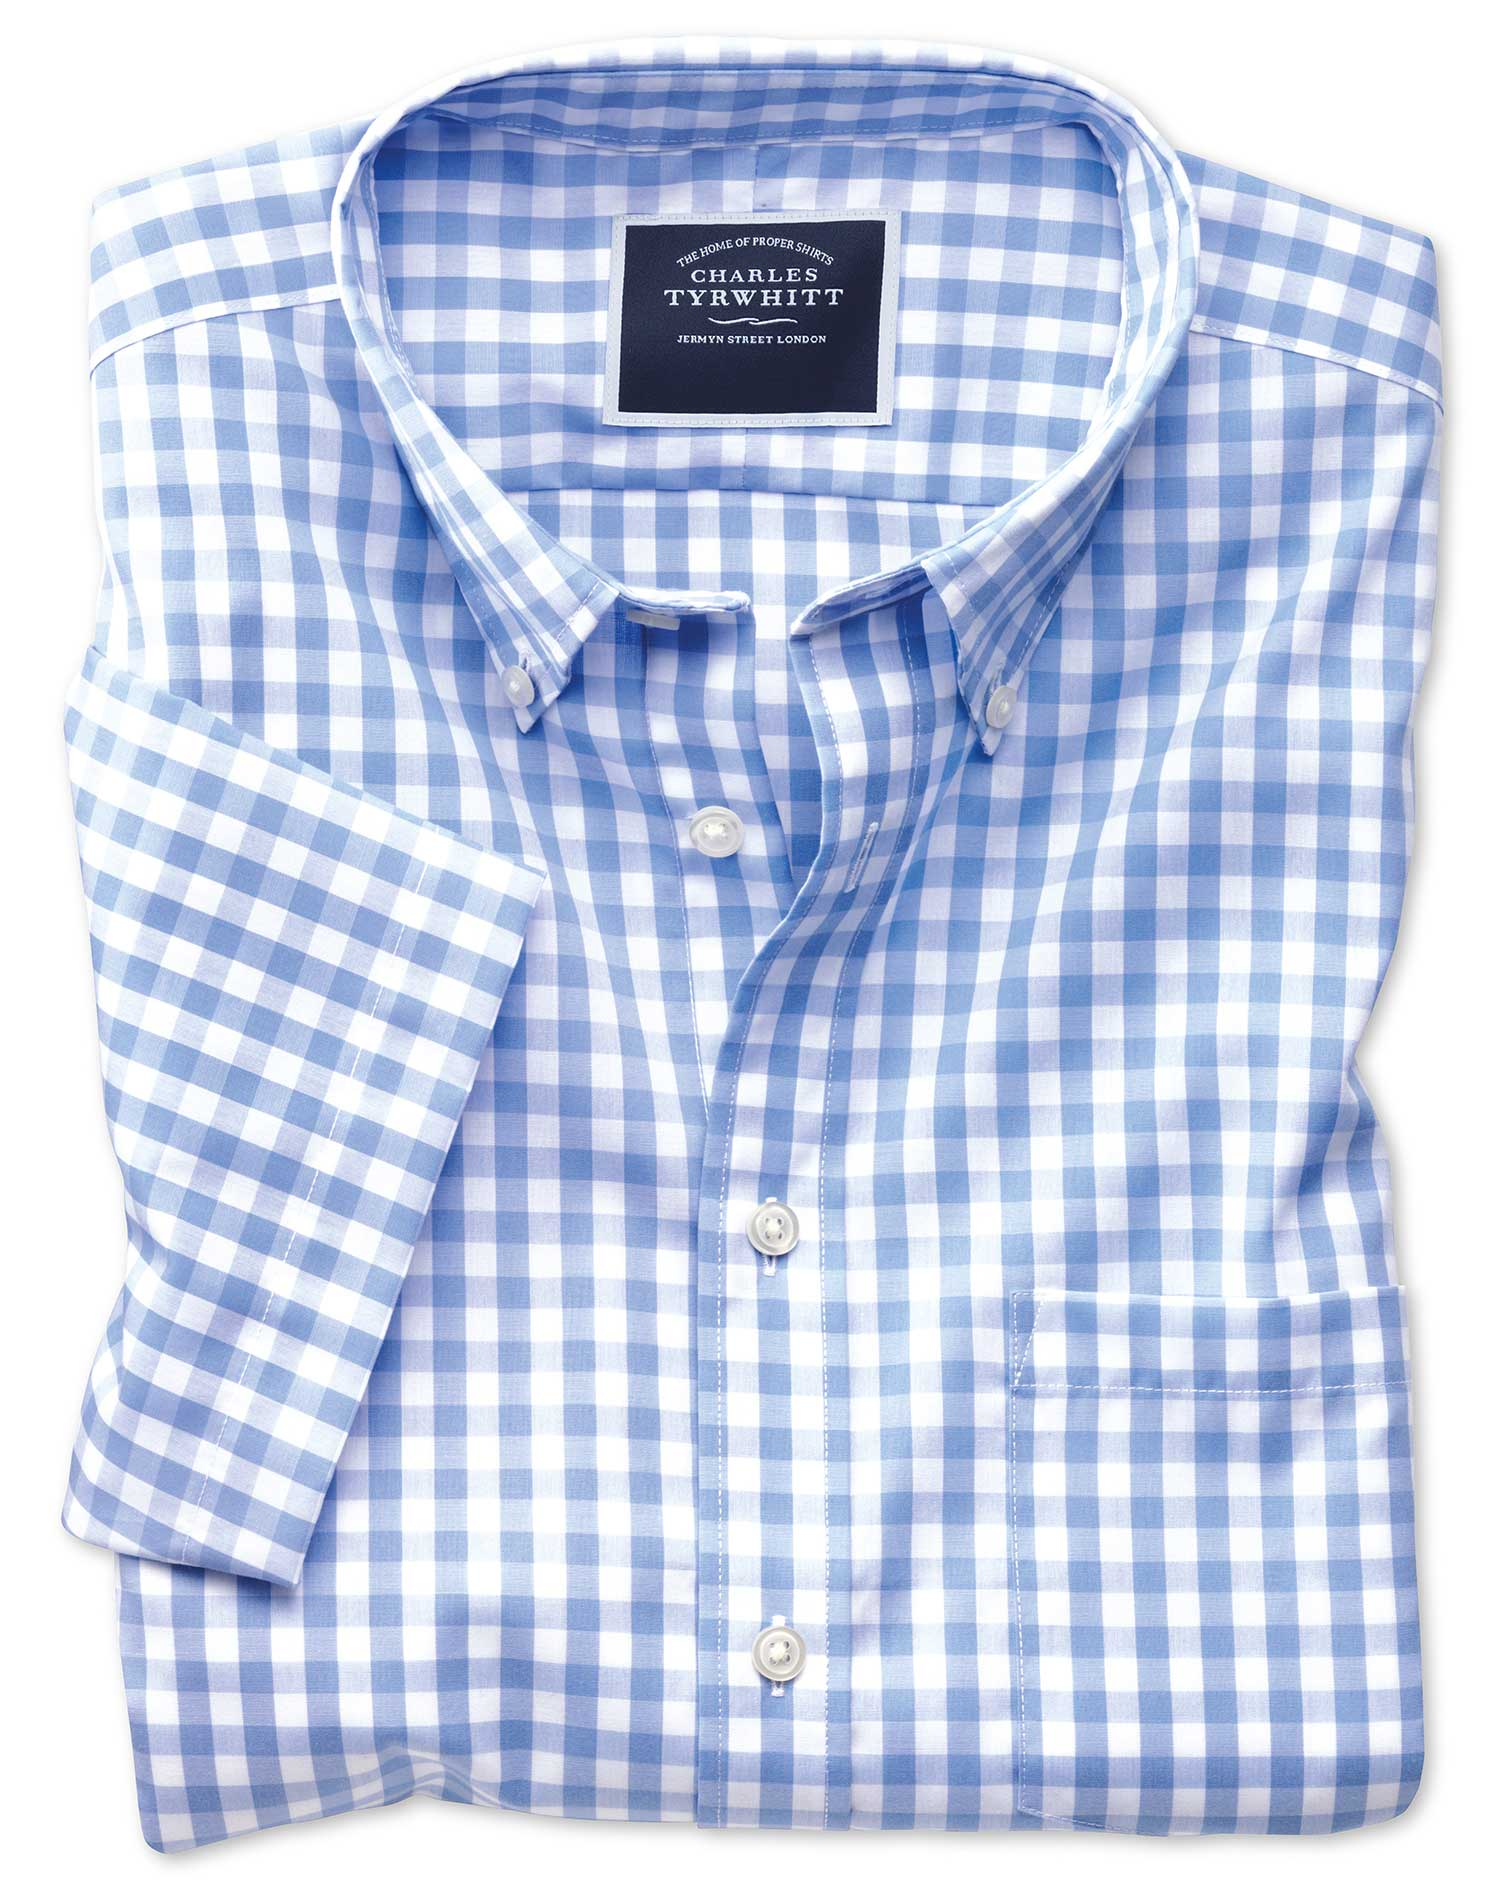 Slim Fit Button-Down Non-Iron Poplin Short Sleeve Sky Blue Gingham Cotton Shirt Single Cuff Size XXL